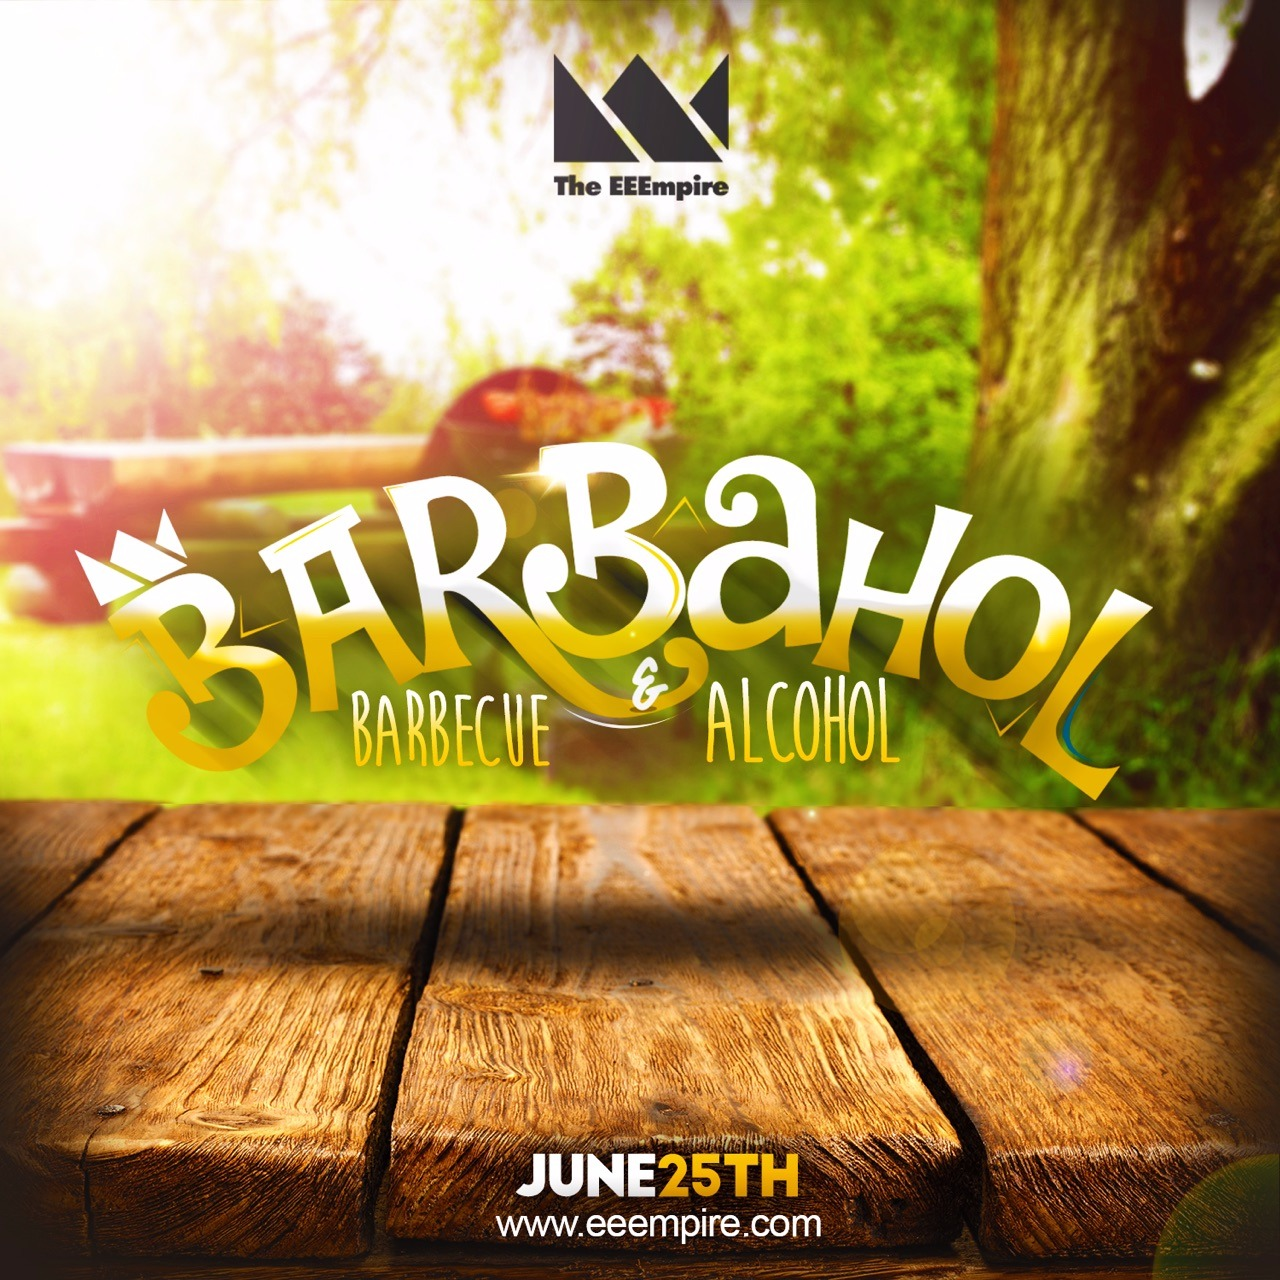 BARBAHOL - BARBECUE AND ALCOHOL